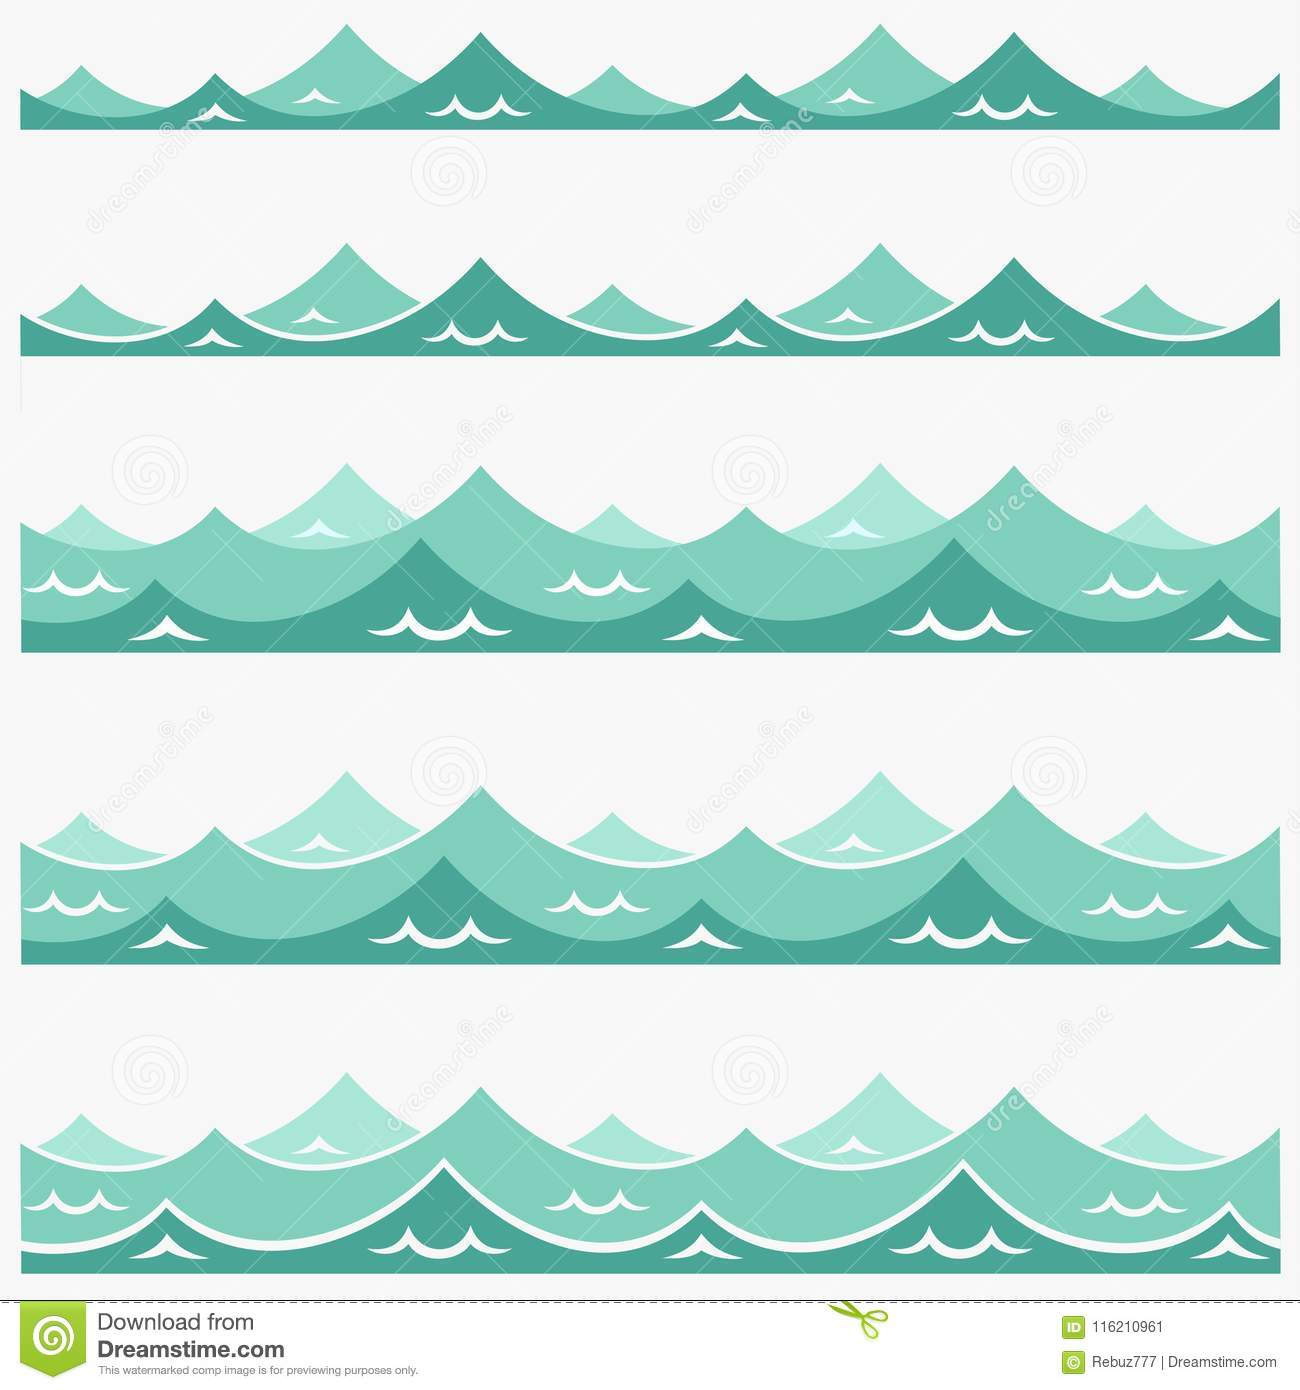 Blue Waves Sea Ocean Vector Illustration Abstract Pattern Background